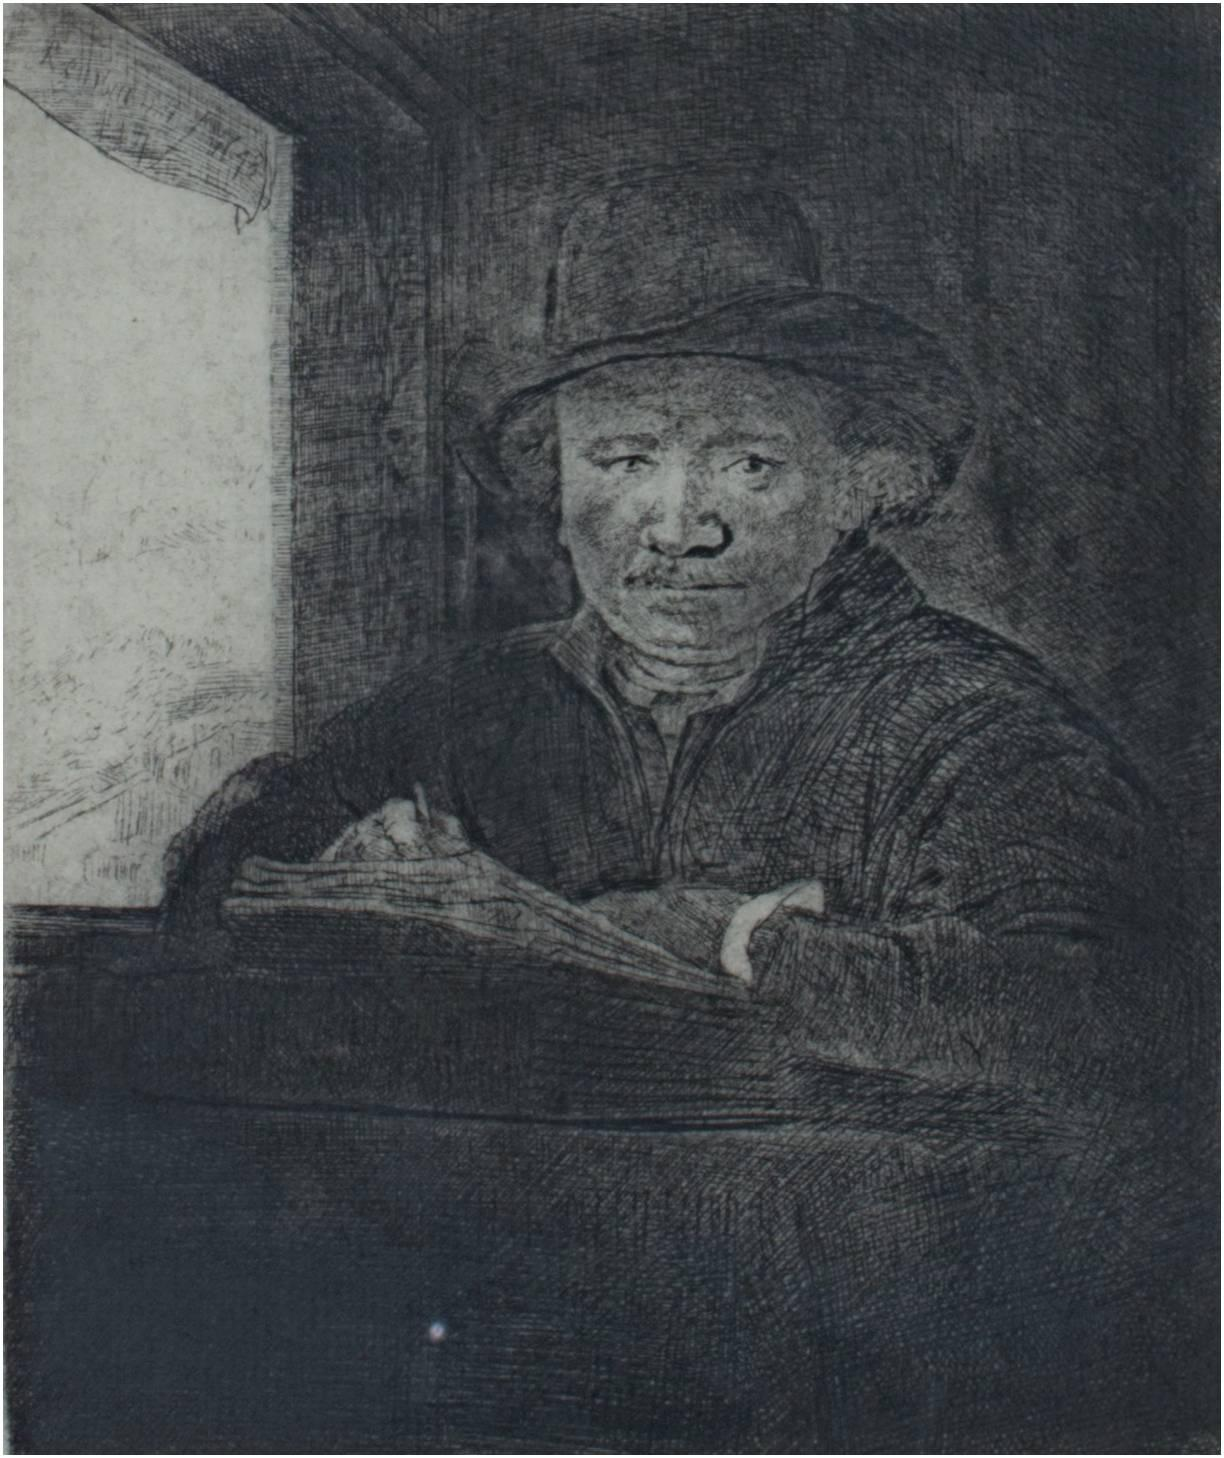 """""""Self Portrait Drawing at a Window,"""" Original Etching by Rembrandt"""